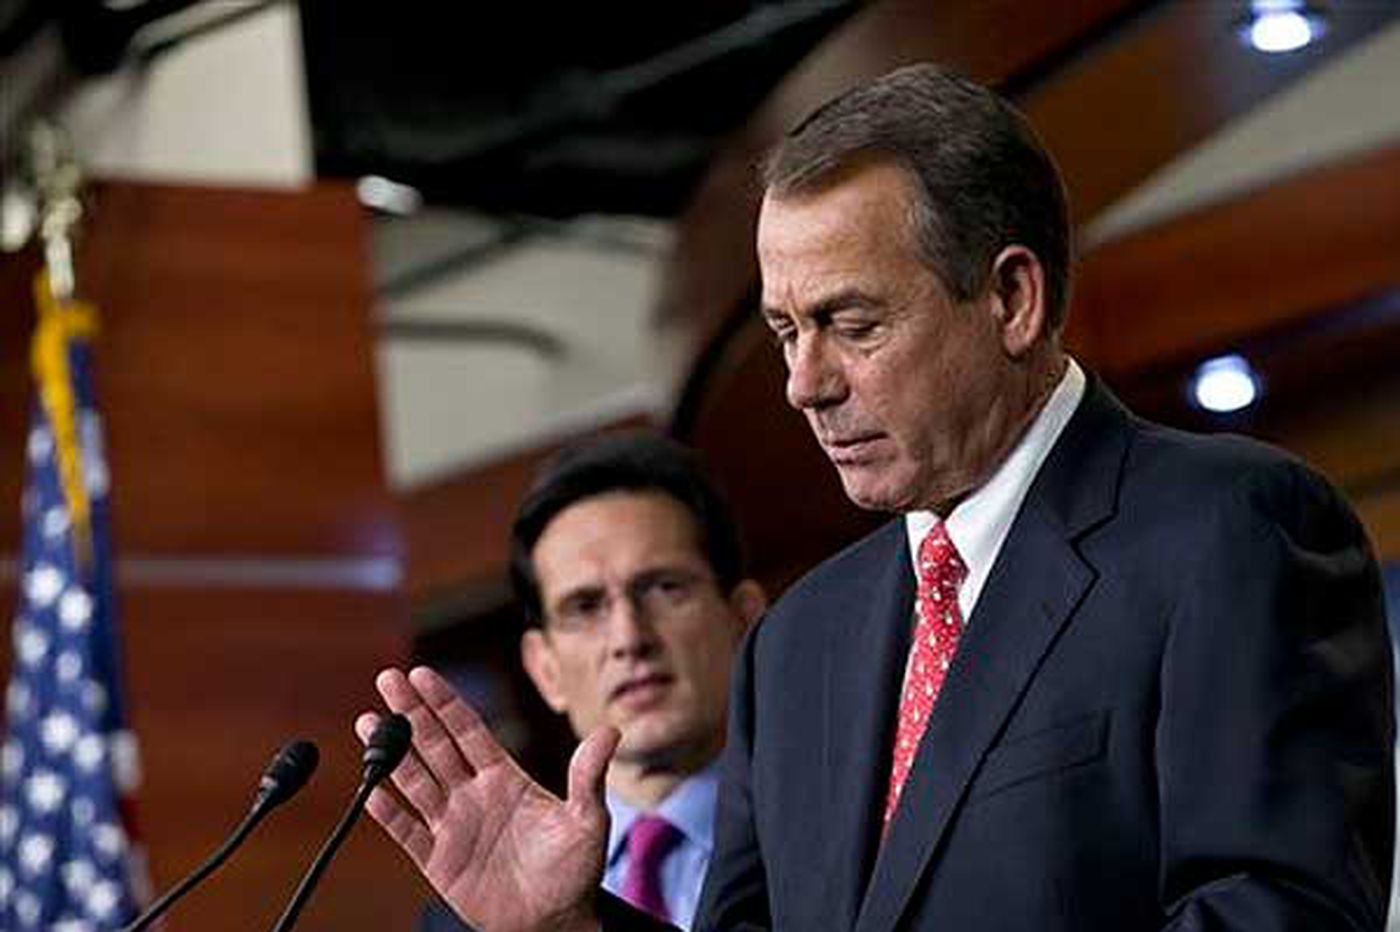 Investment advisers urging clients to be calm about fiscal cliff